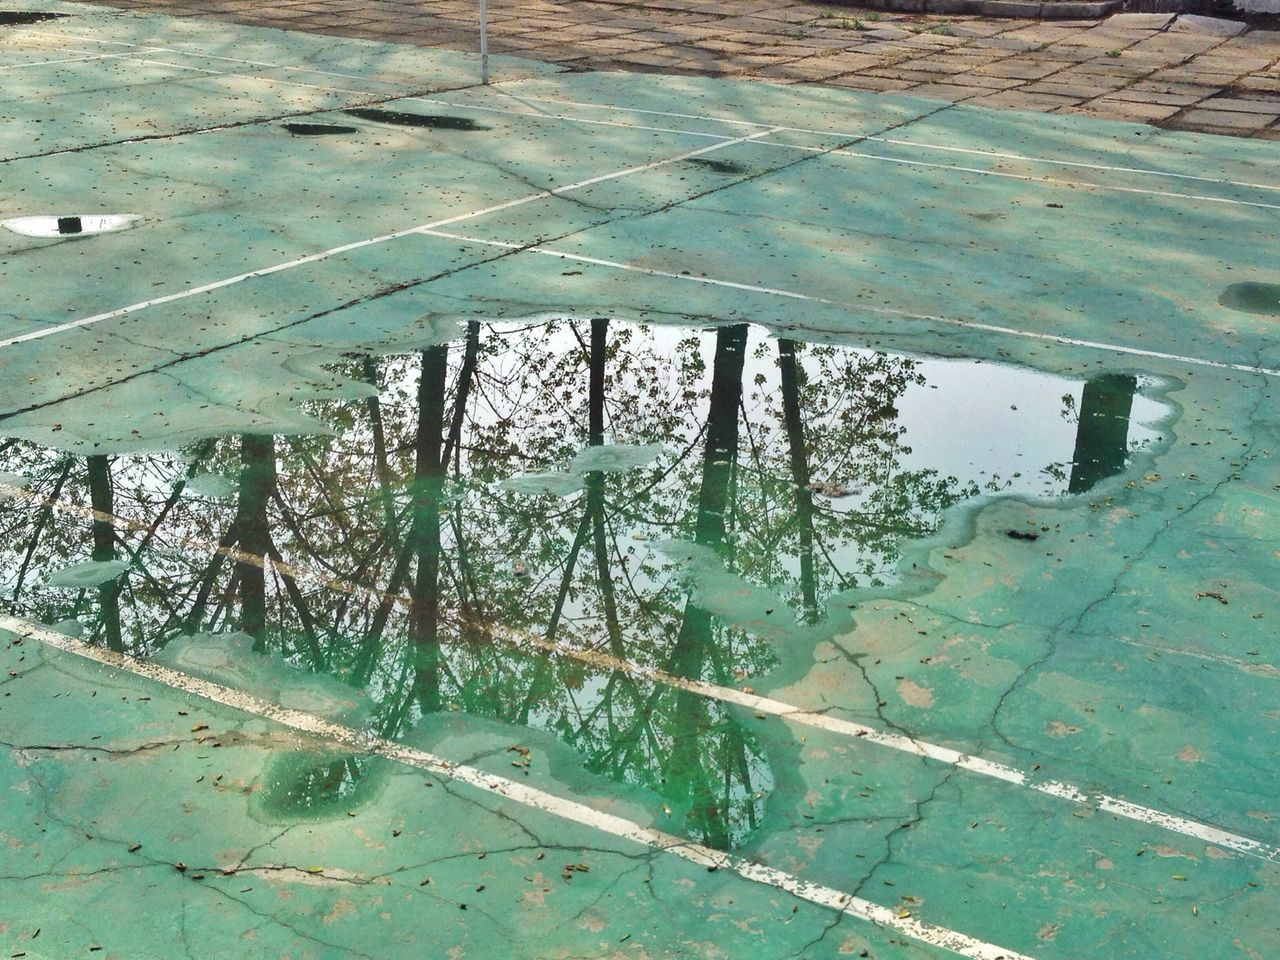 Reflection of trees on puddle